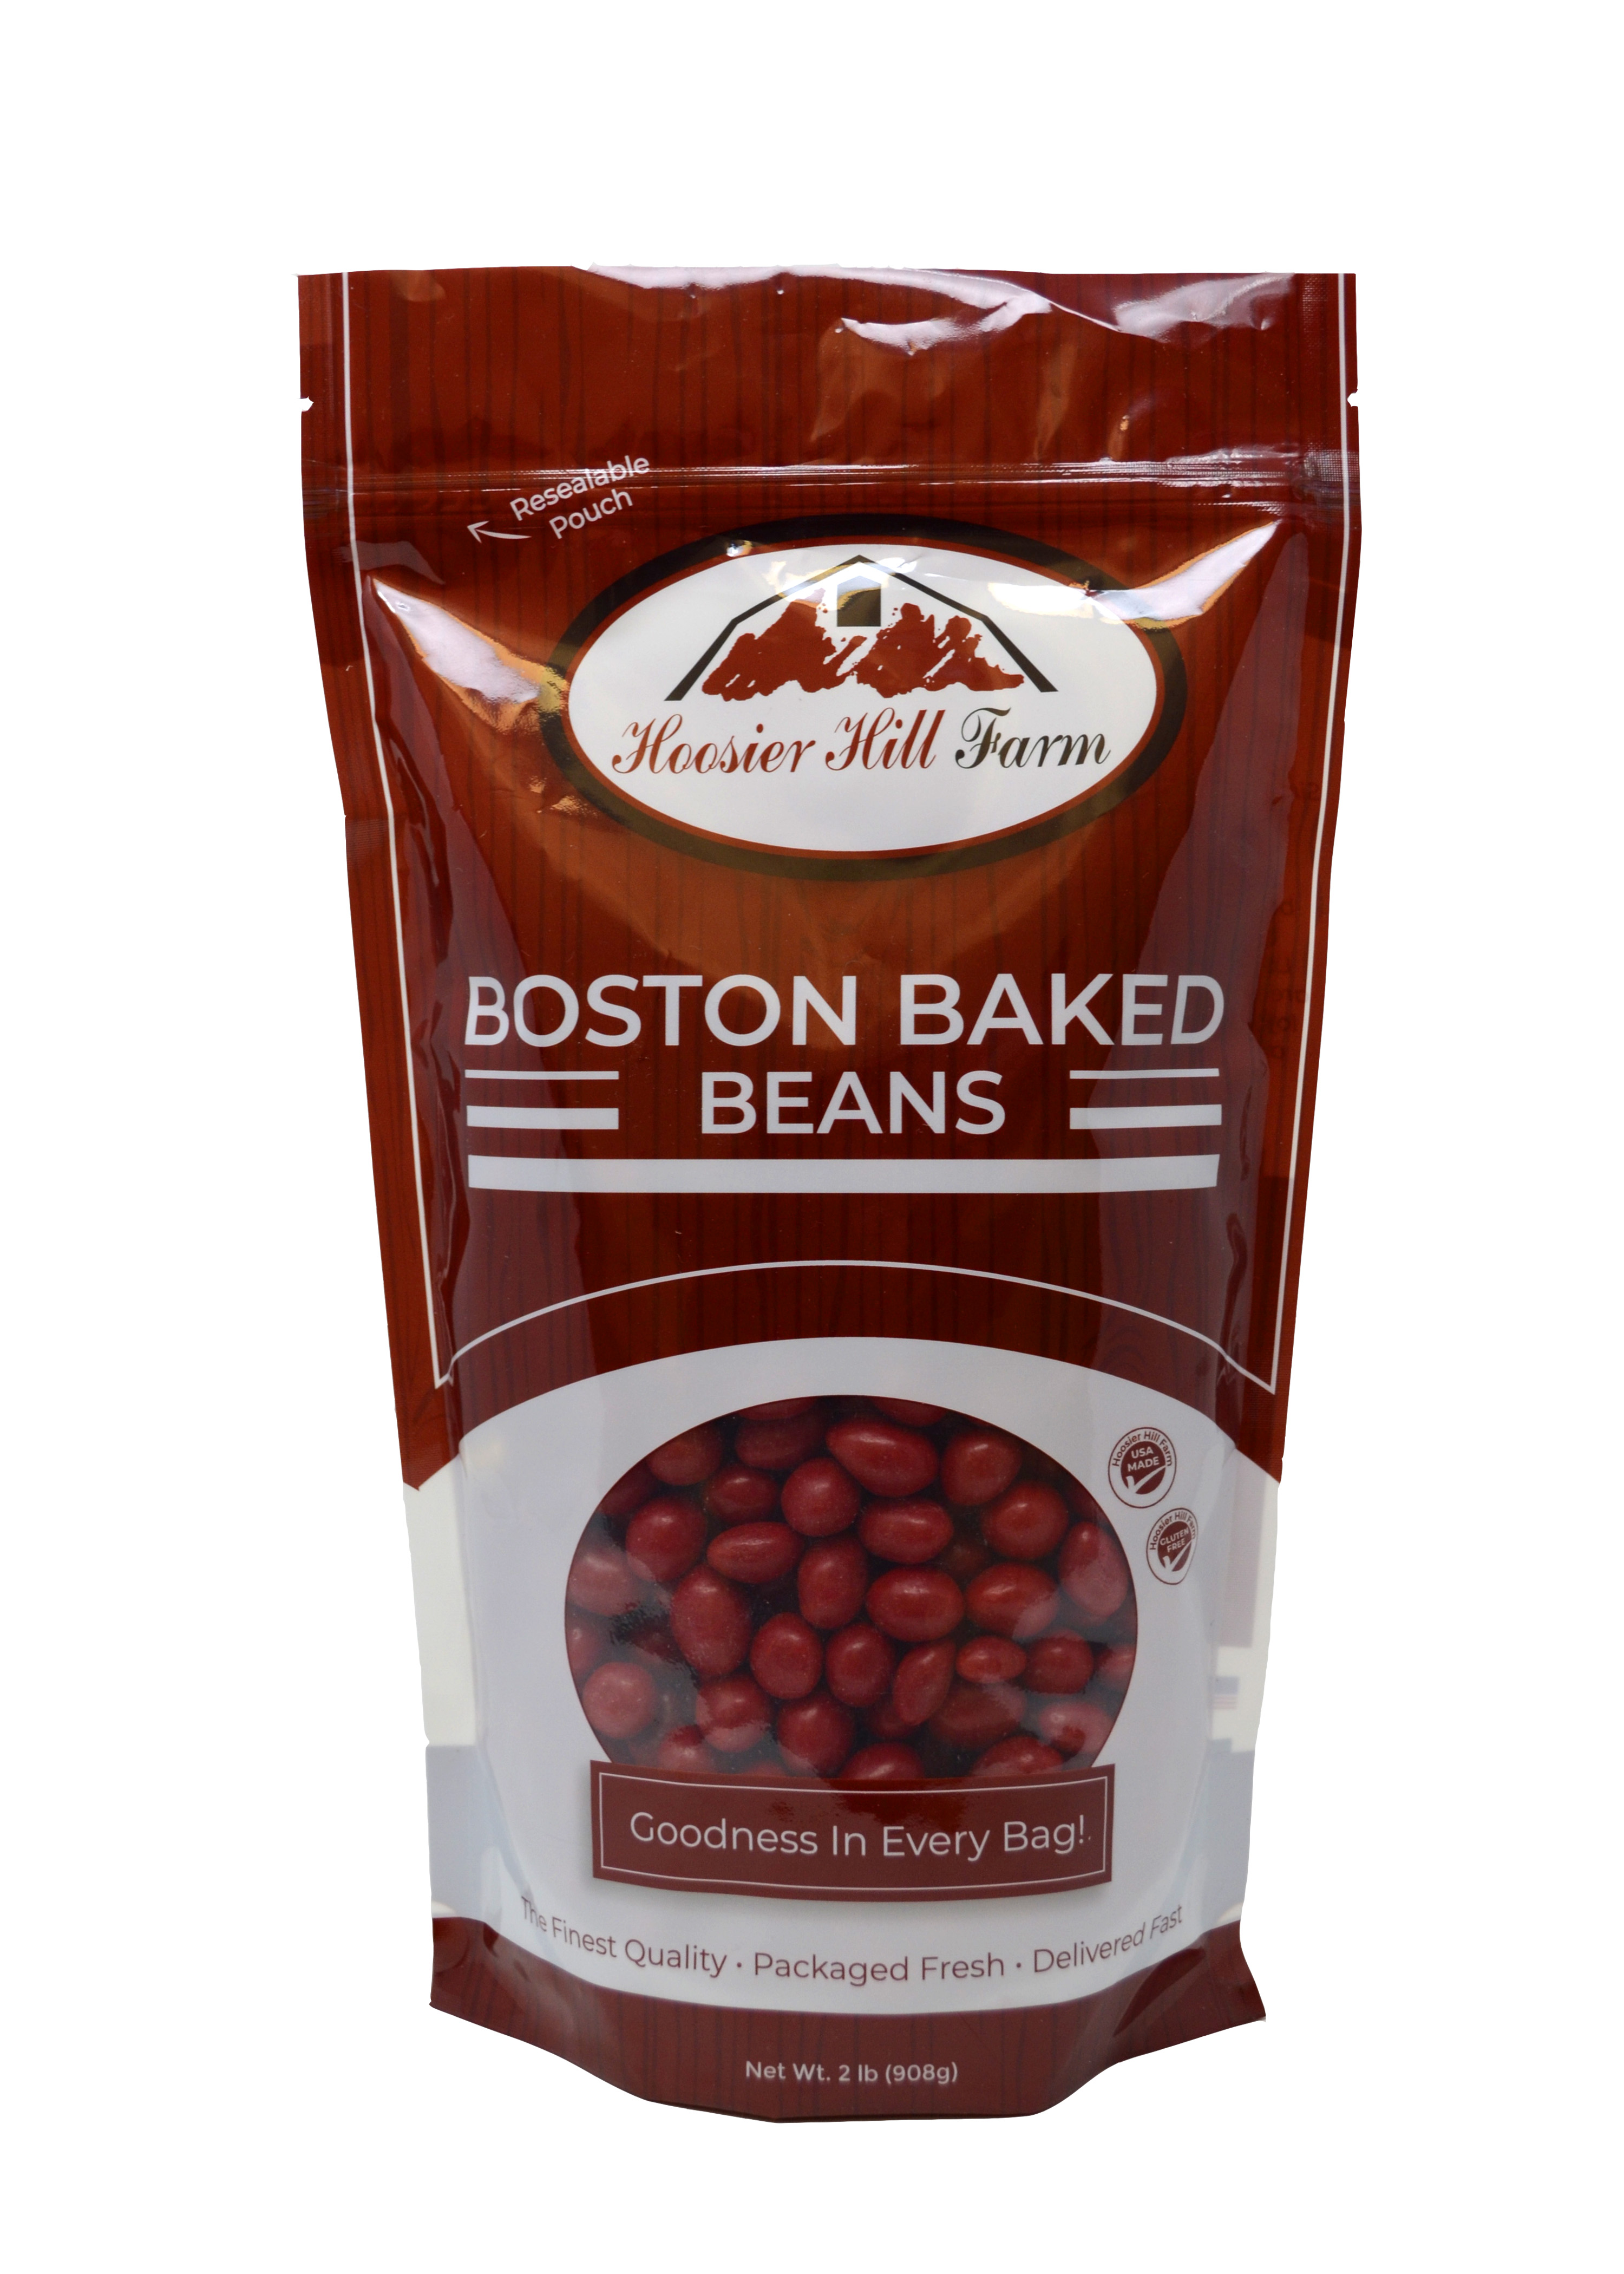 Hoosier Hill Farm Boston Baked Beans 2 lbs